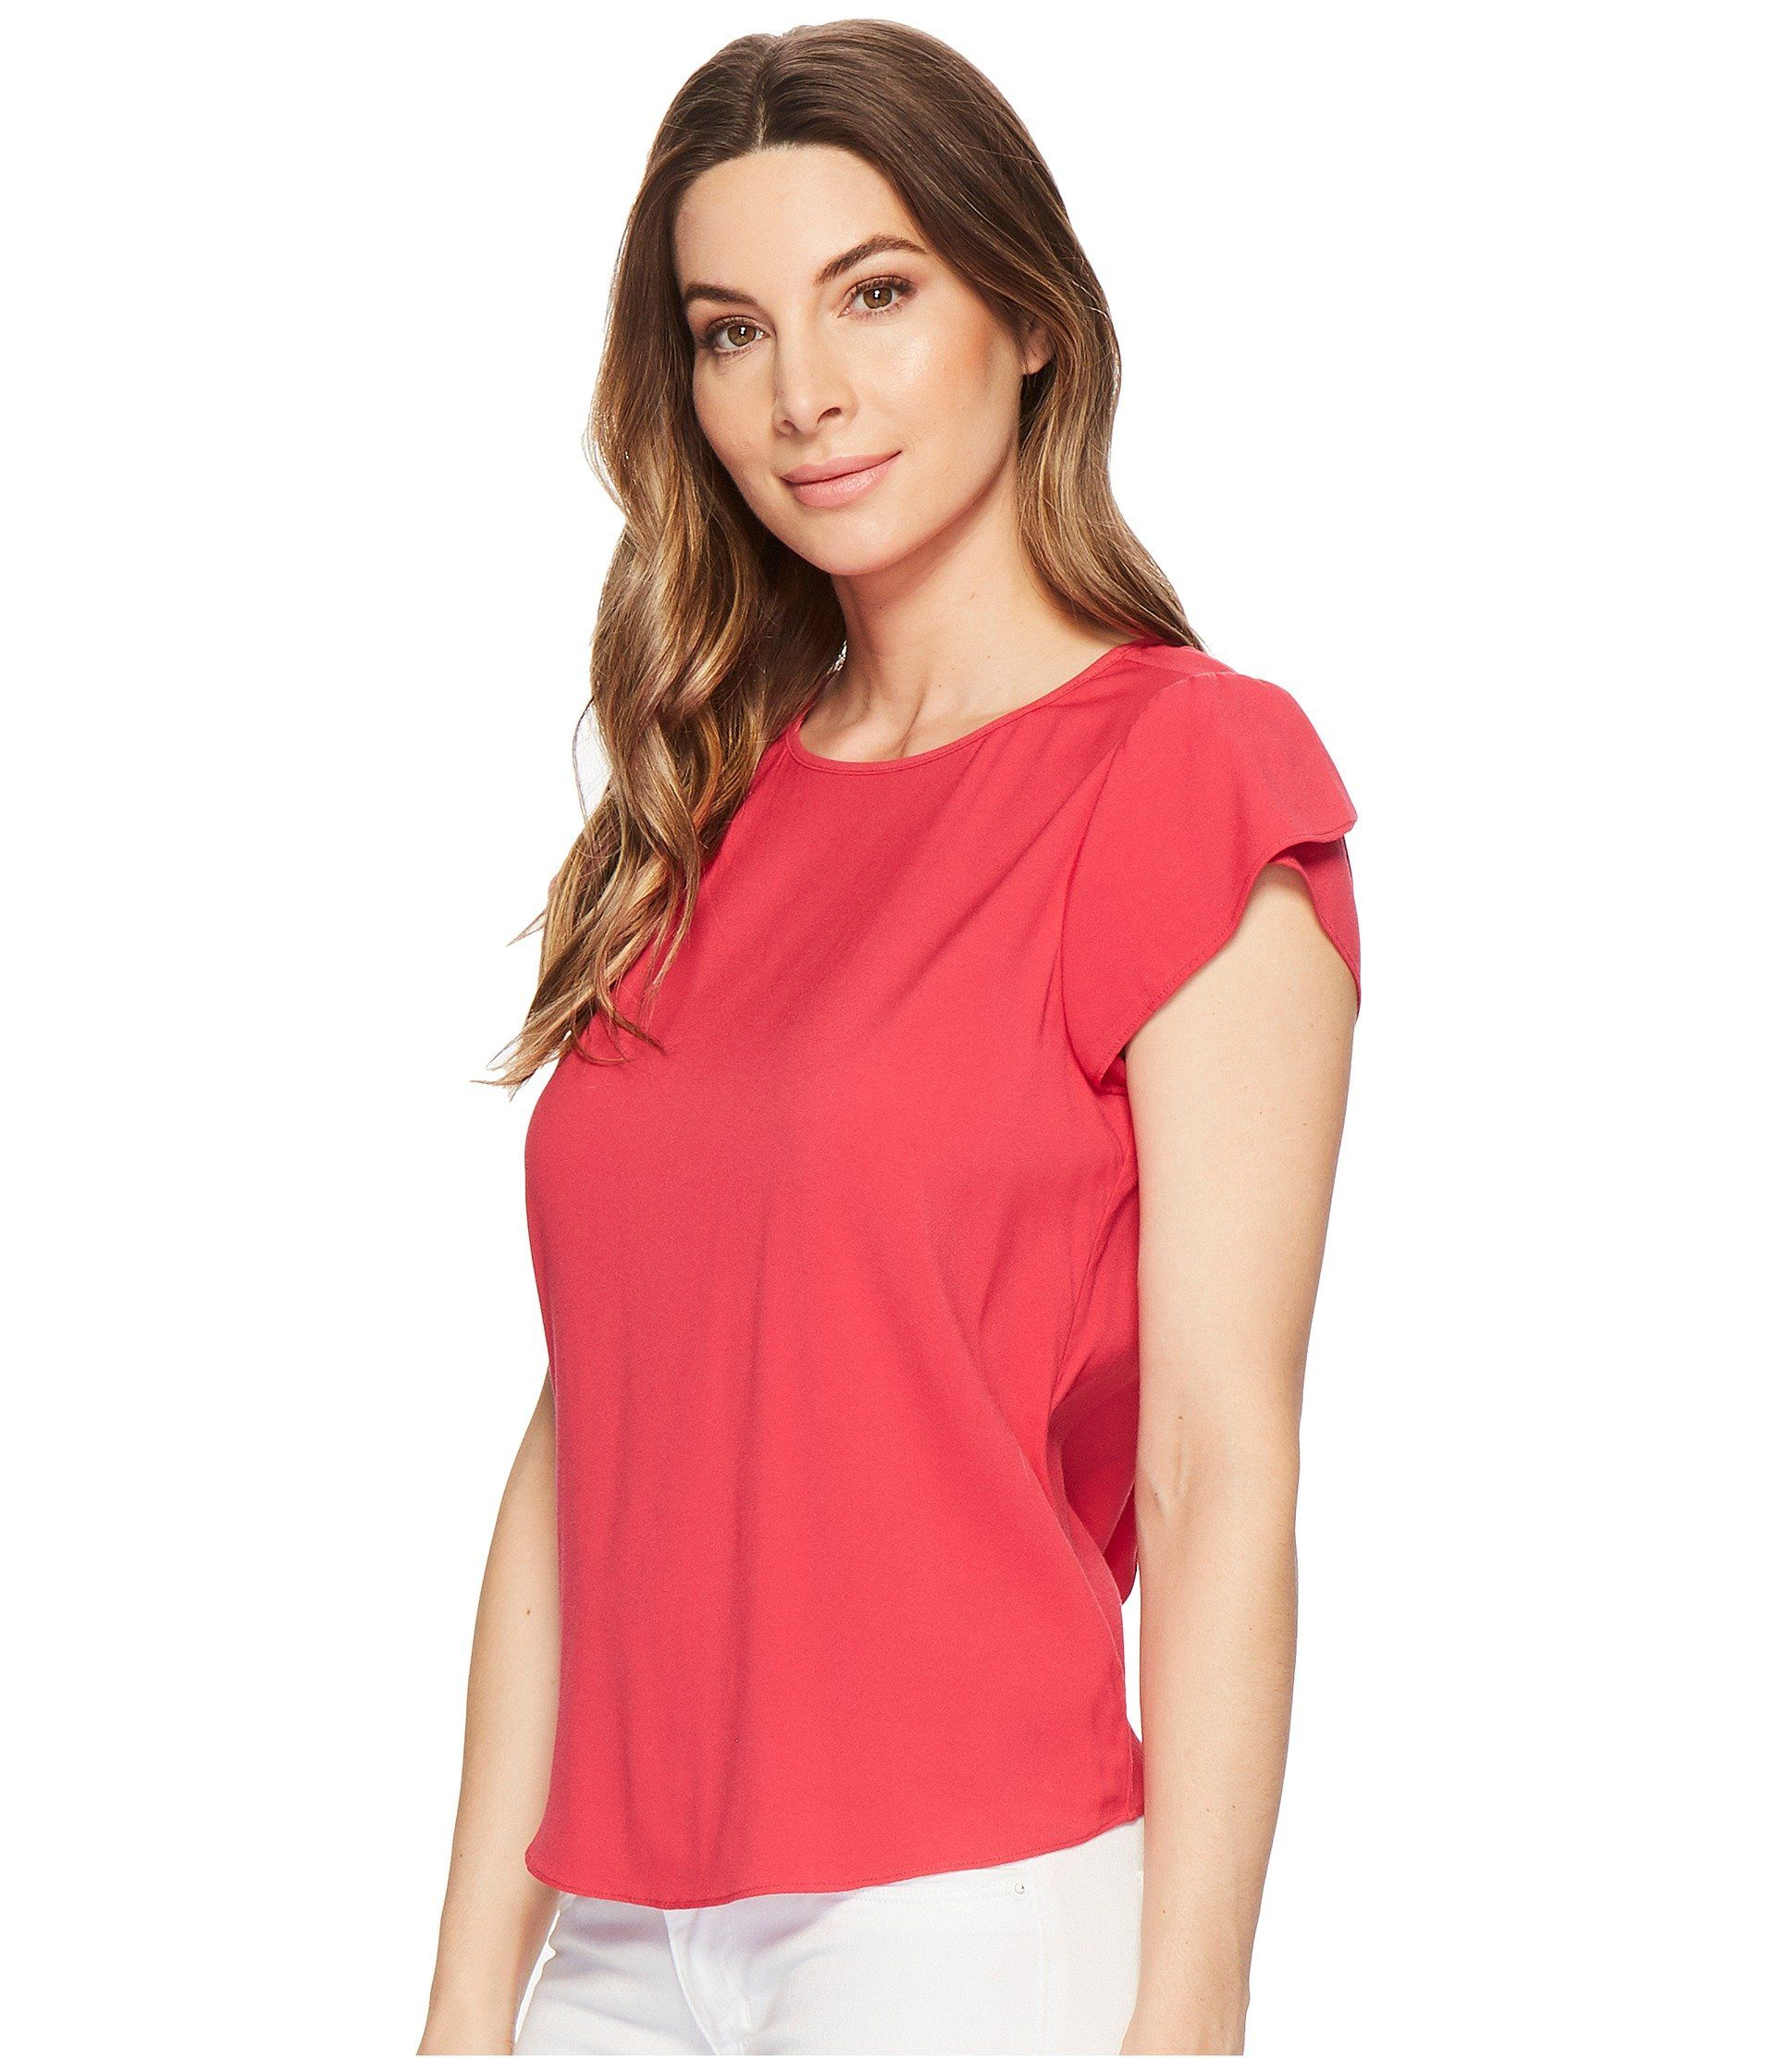 Cora Skinner Zappos 2018 Fashion, Women's top, Women